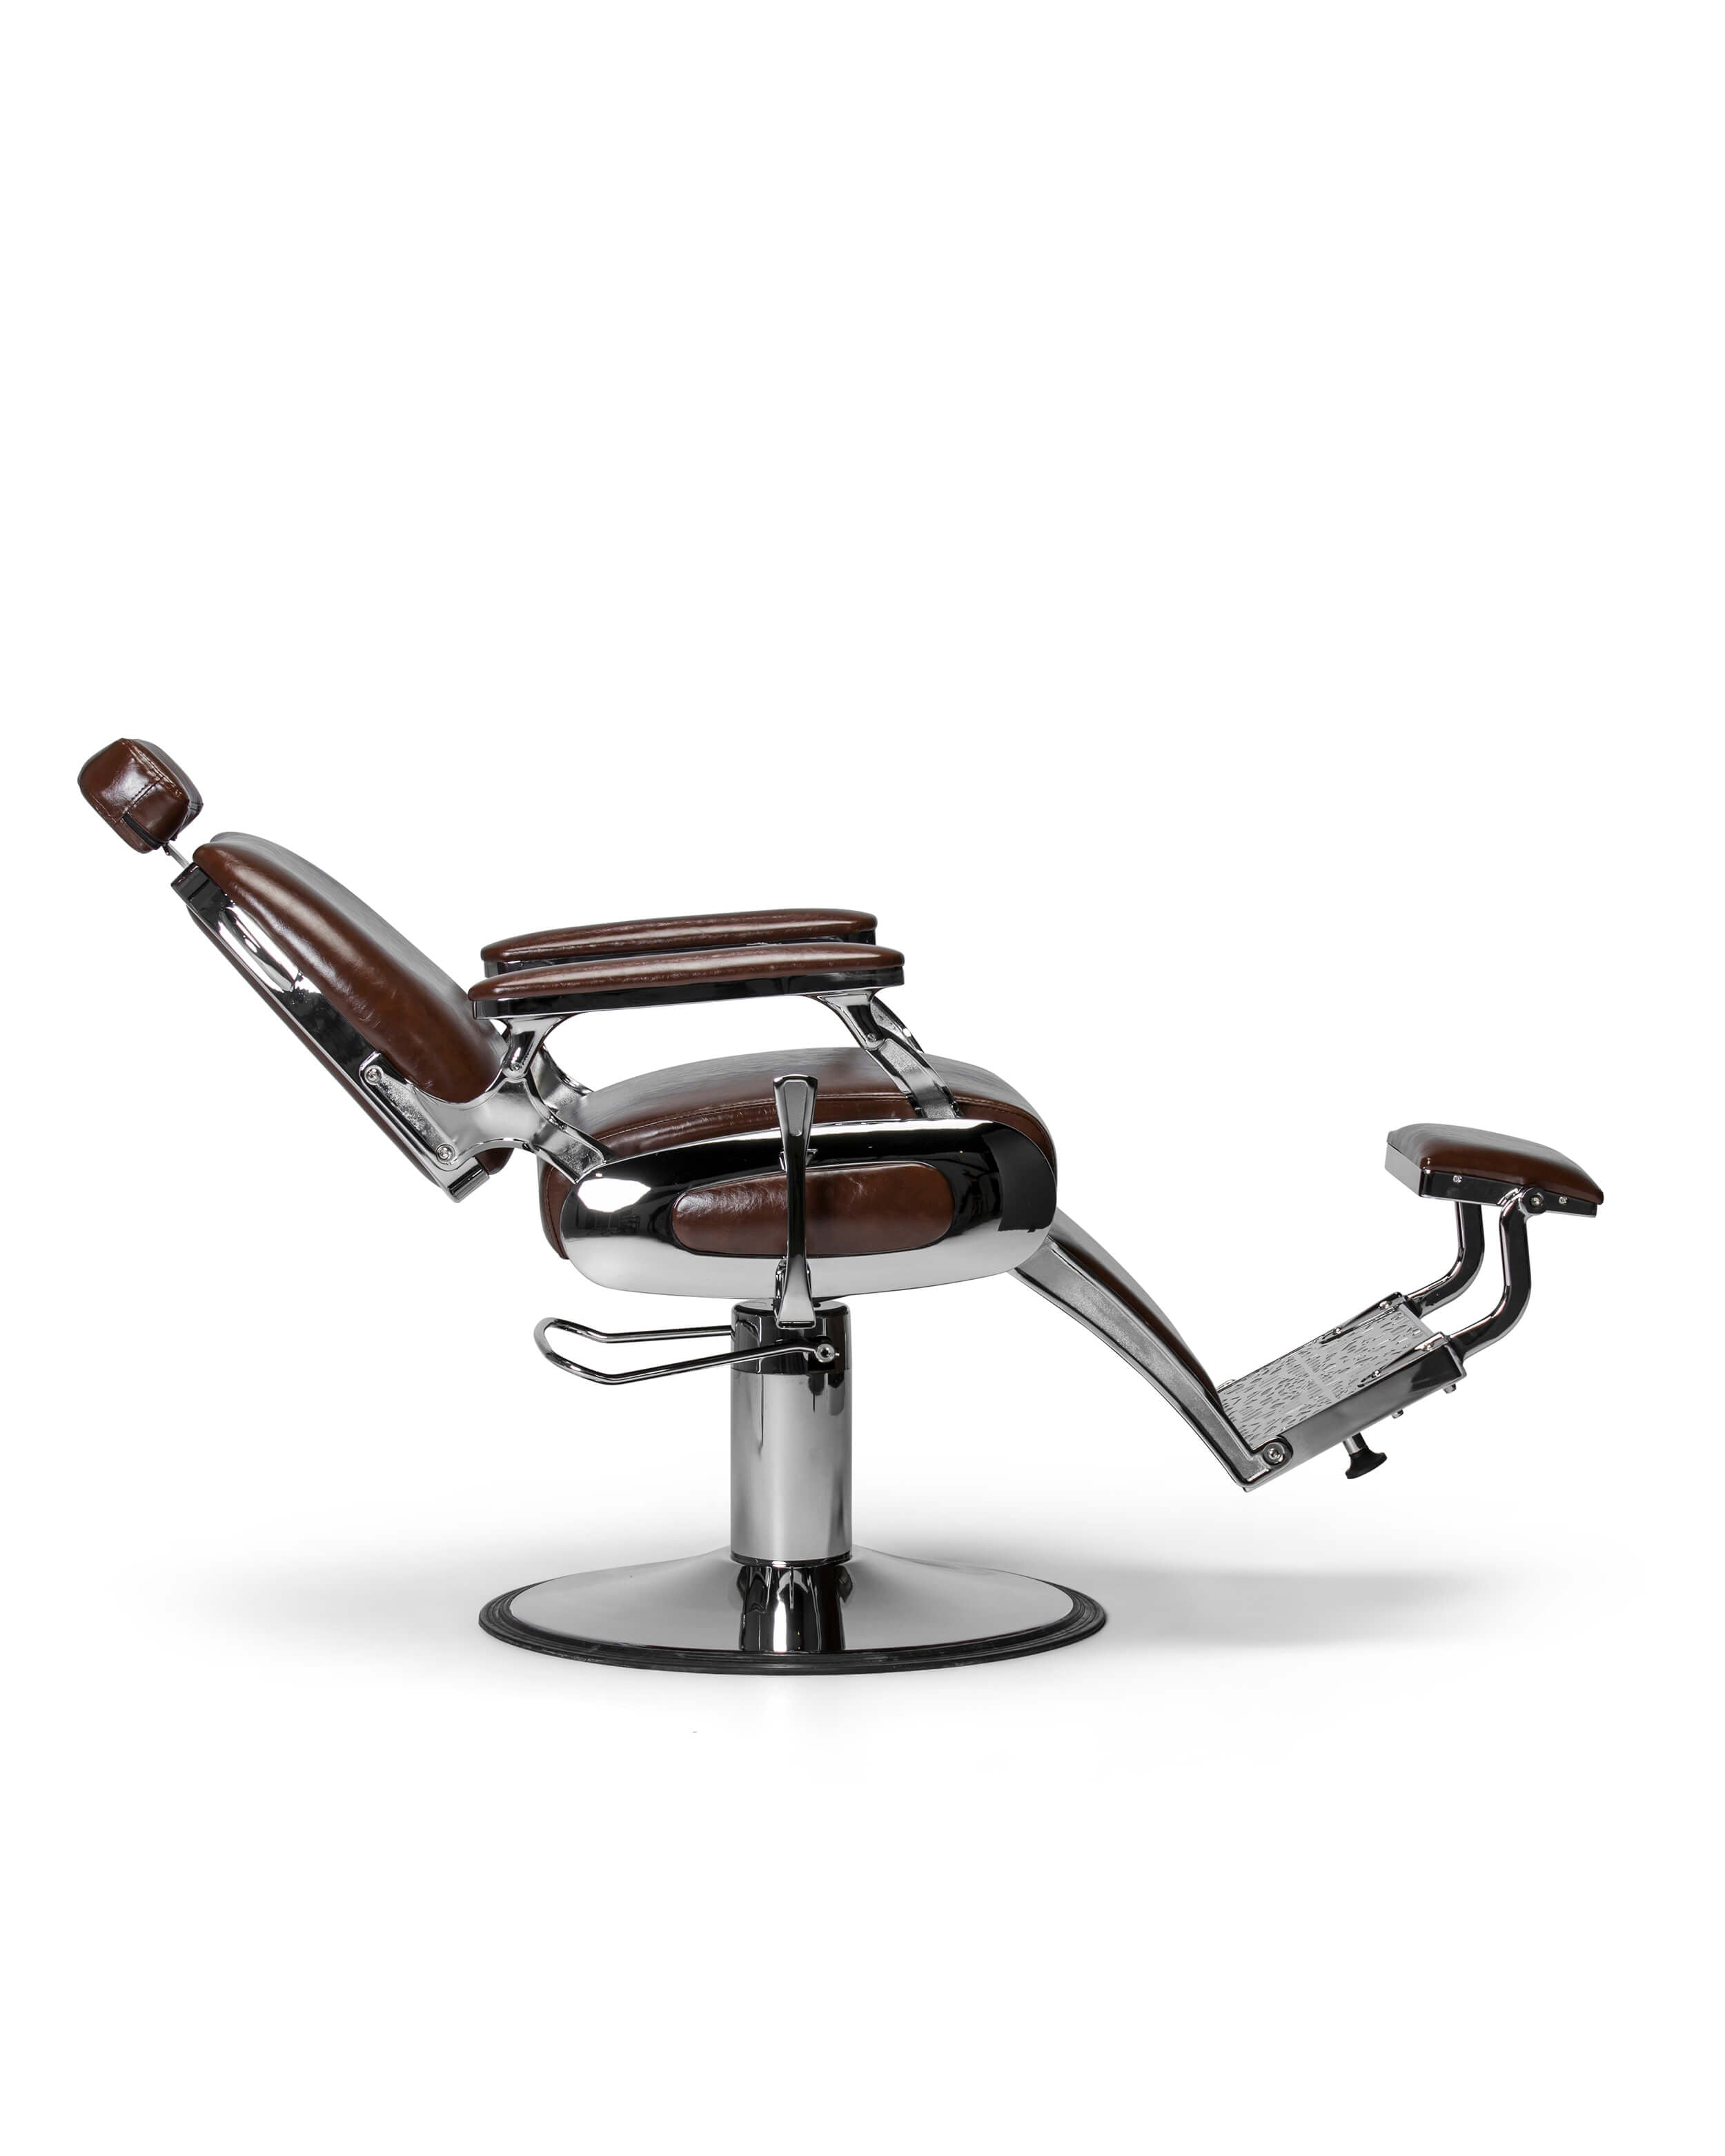 The Medallion - Barber Chair Supply Co